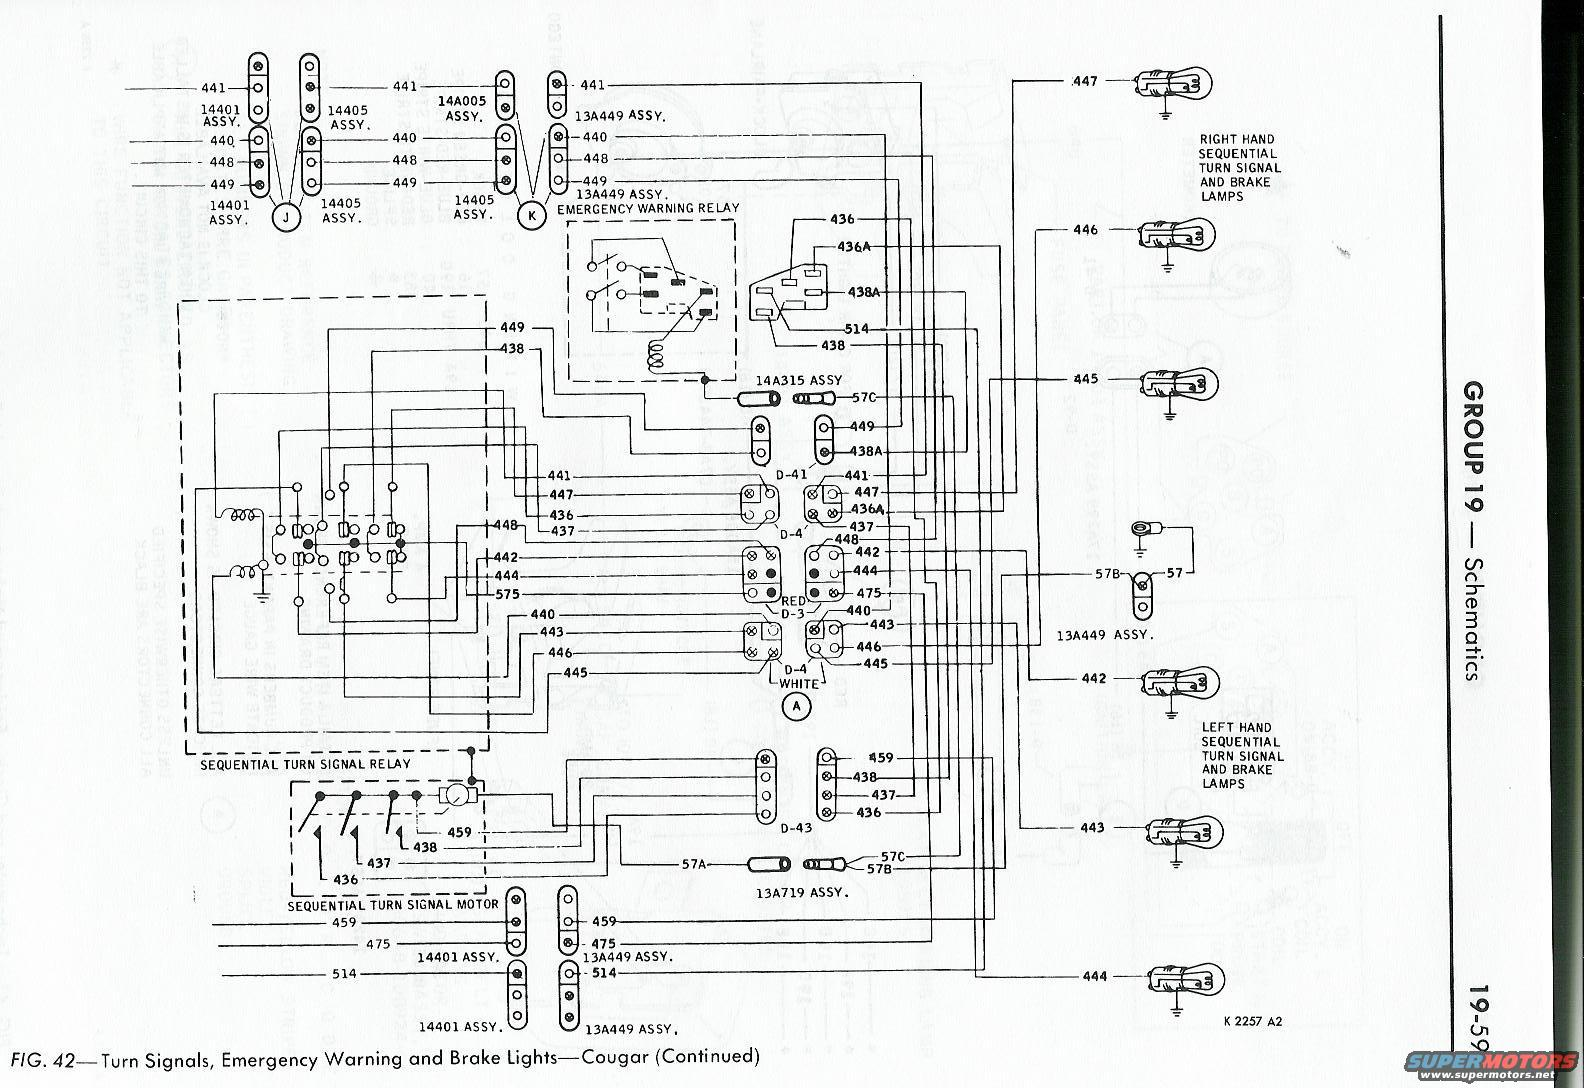 1915 Ford Model T Wiring Diagram. Ford. Auto Wiring Diagram